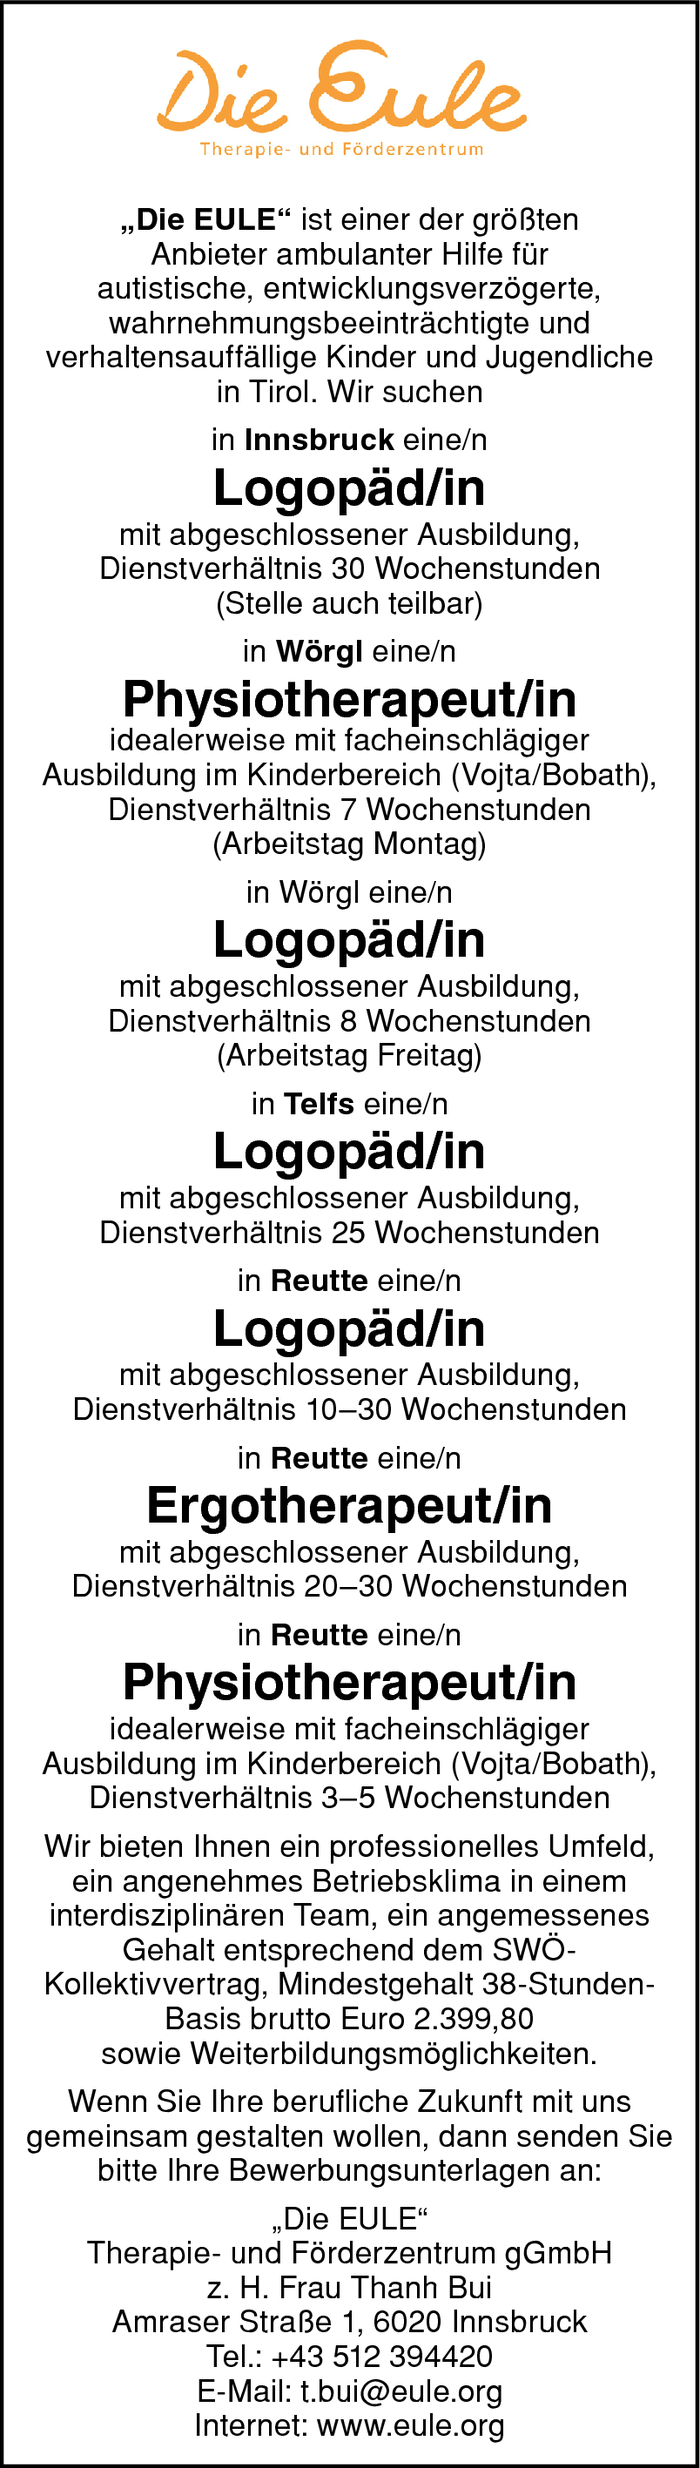 Logopäd/in & Physiotherapeut/in & Ergotherapeut/in